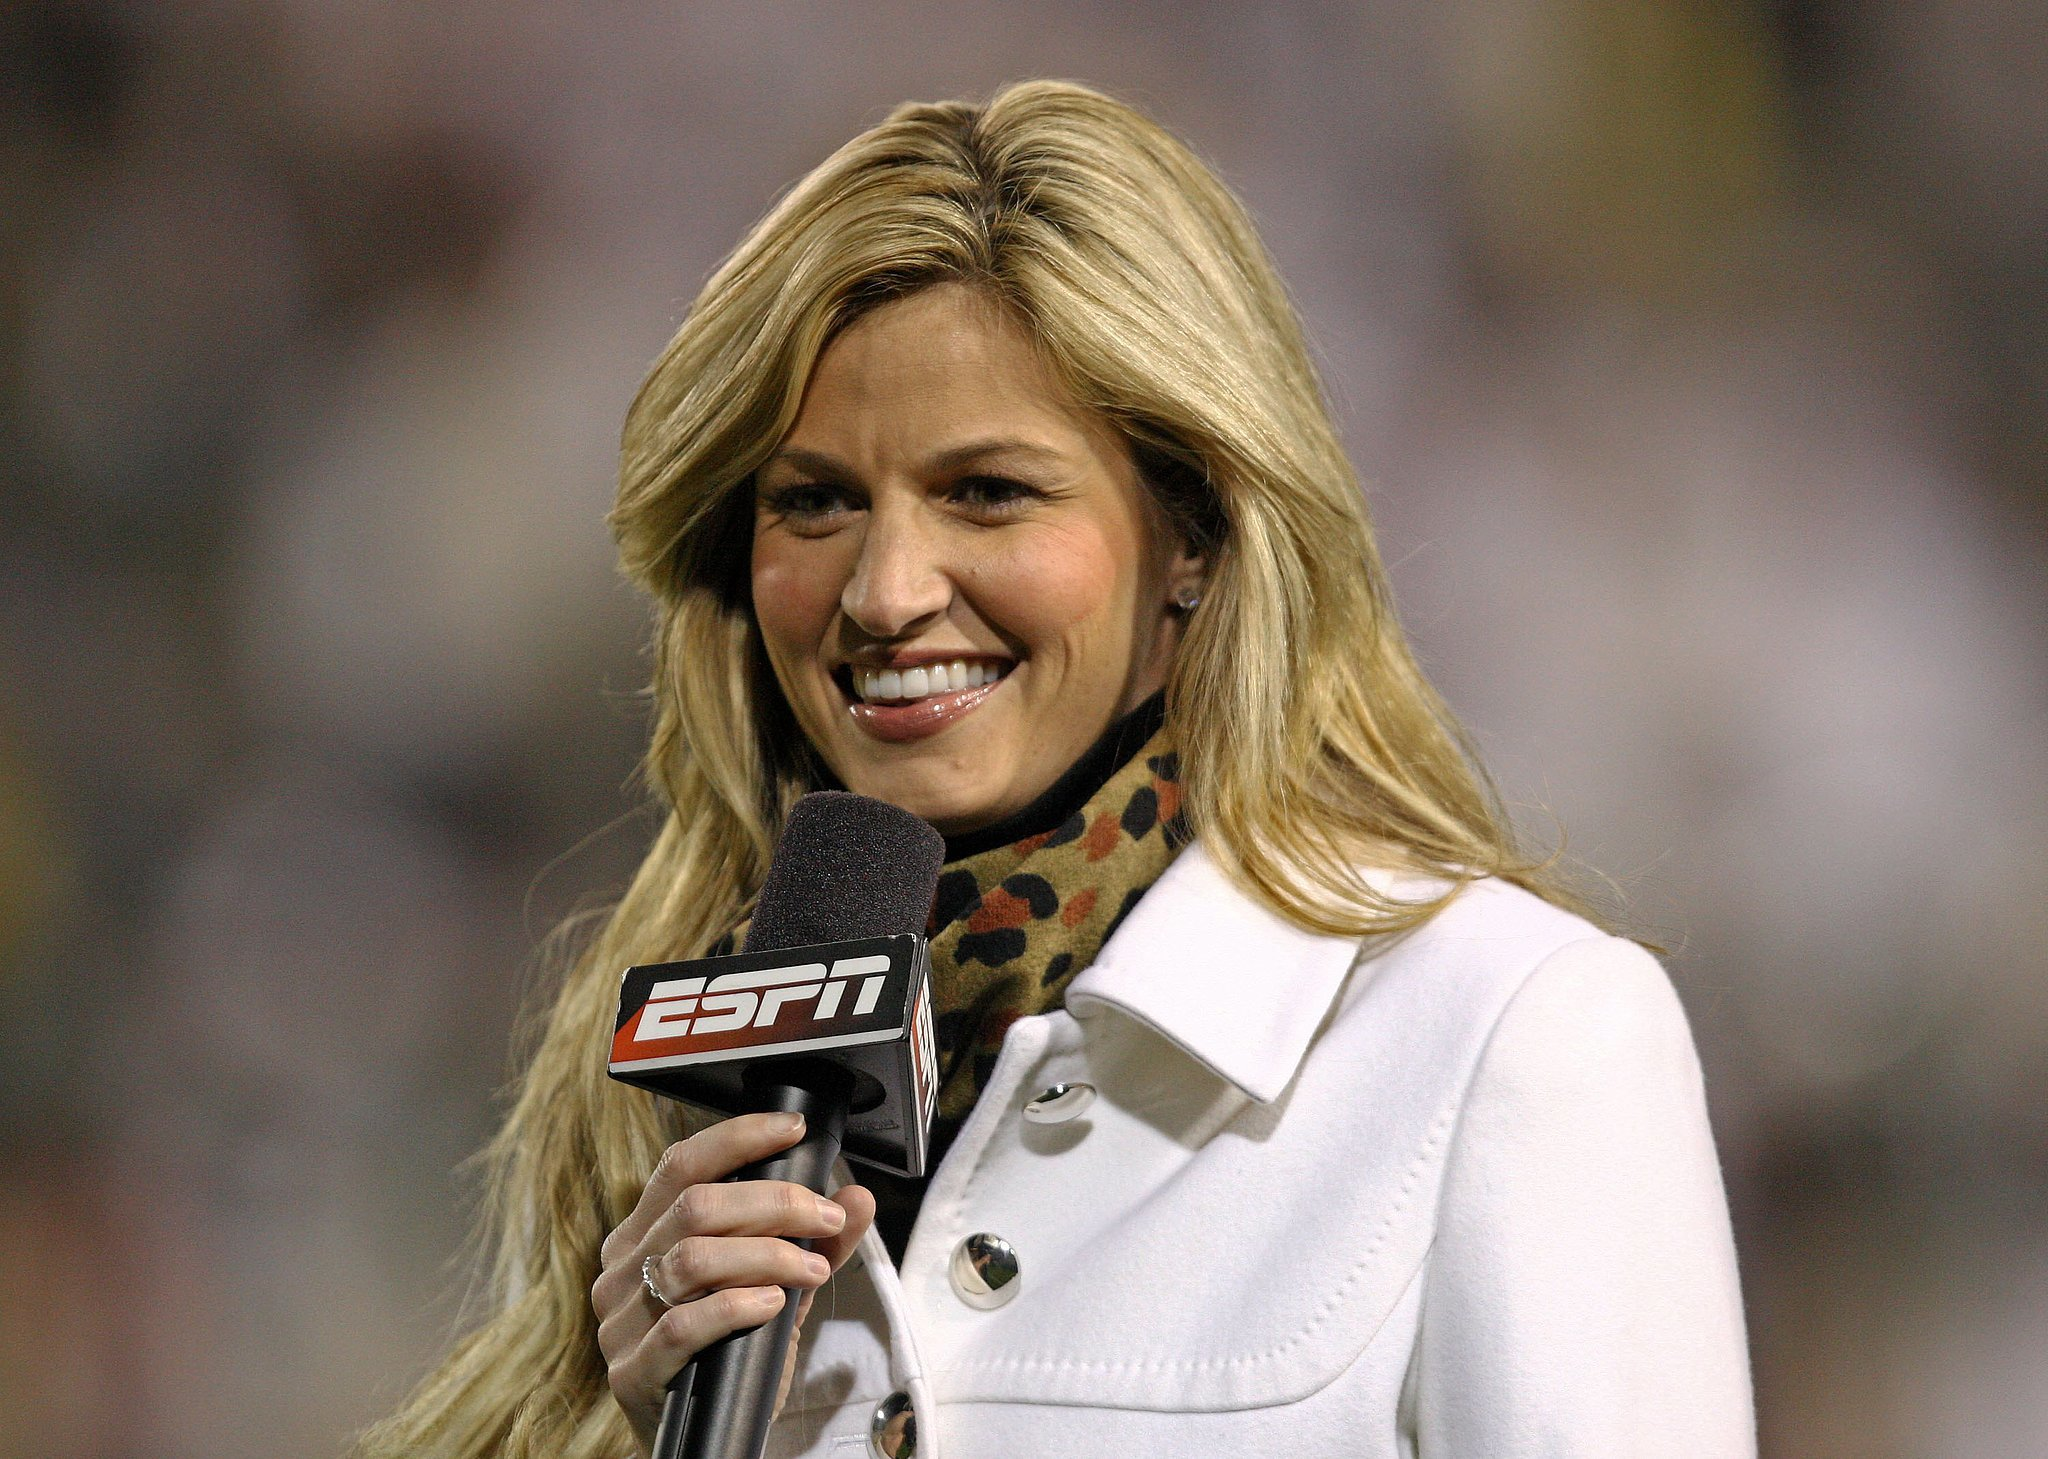 """In 2004, she started working for ESPN as a reporter for National Hockey Night. Soon, she took on sideline reporting duties for both college football and major league baseball. By 2007, she was named """"America's Sexiest Sportscaster"""" by Playboy Magazine. She had already made a name for herself in the sports world, when a peeping Tom scandal thrust her into the national spotlight in 2009. Footage of Erin naked in a hotel room was released online, and the stalker was later arrested and sentenced to 30 months in prison. Erin told Oprah that she thought her career was over because of the scandal but added, """"I also feel it's my duty to come out and show this person, you know what? I worked hard for my career and I — I got there the right way, and you're not gonna break me down."""""""